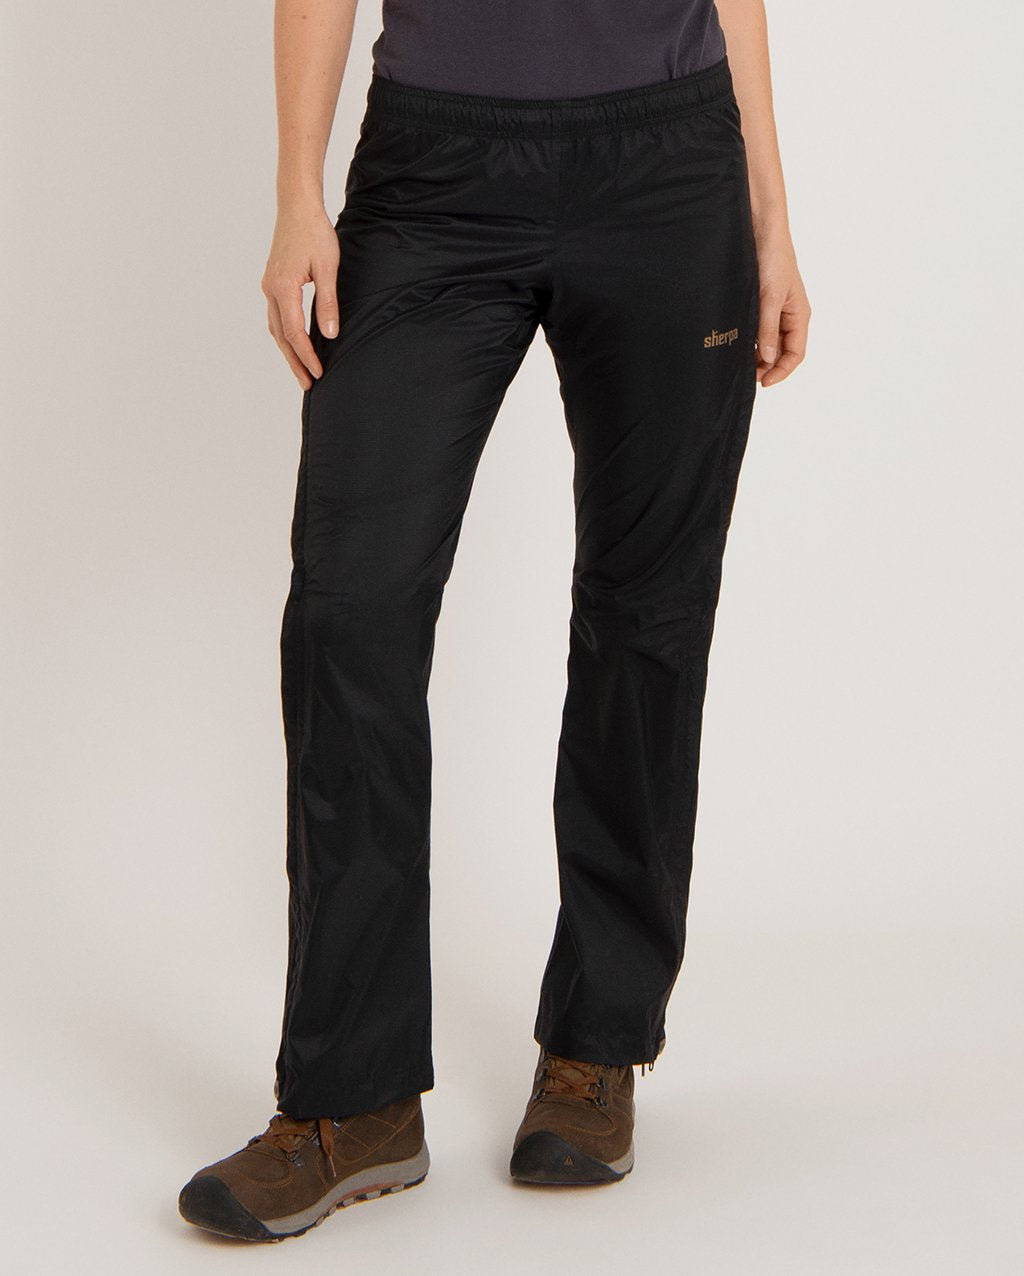 Sherpa Women's 2.5 Layer Pant